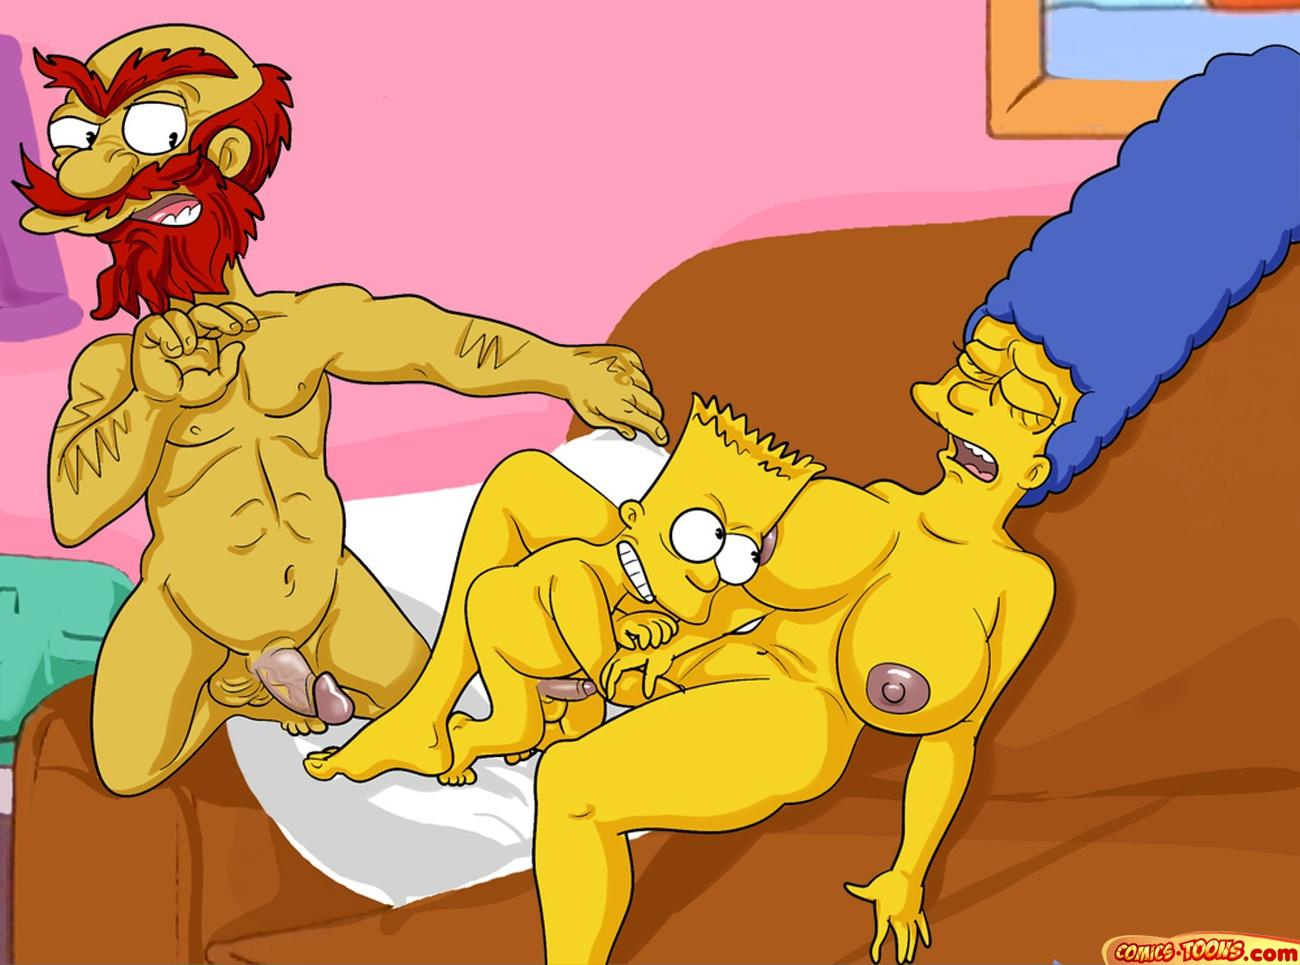 Simpsons Cartoon Porn Porn Videos Pornhubcom